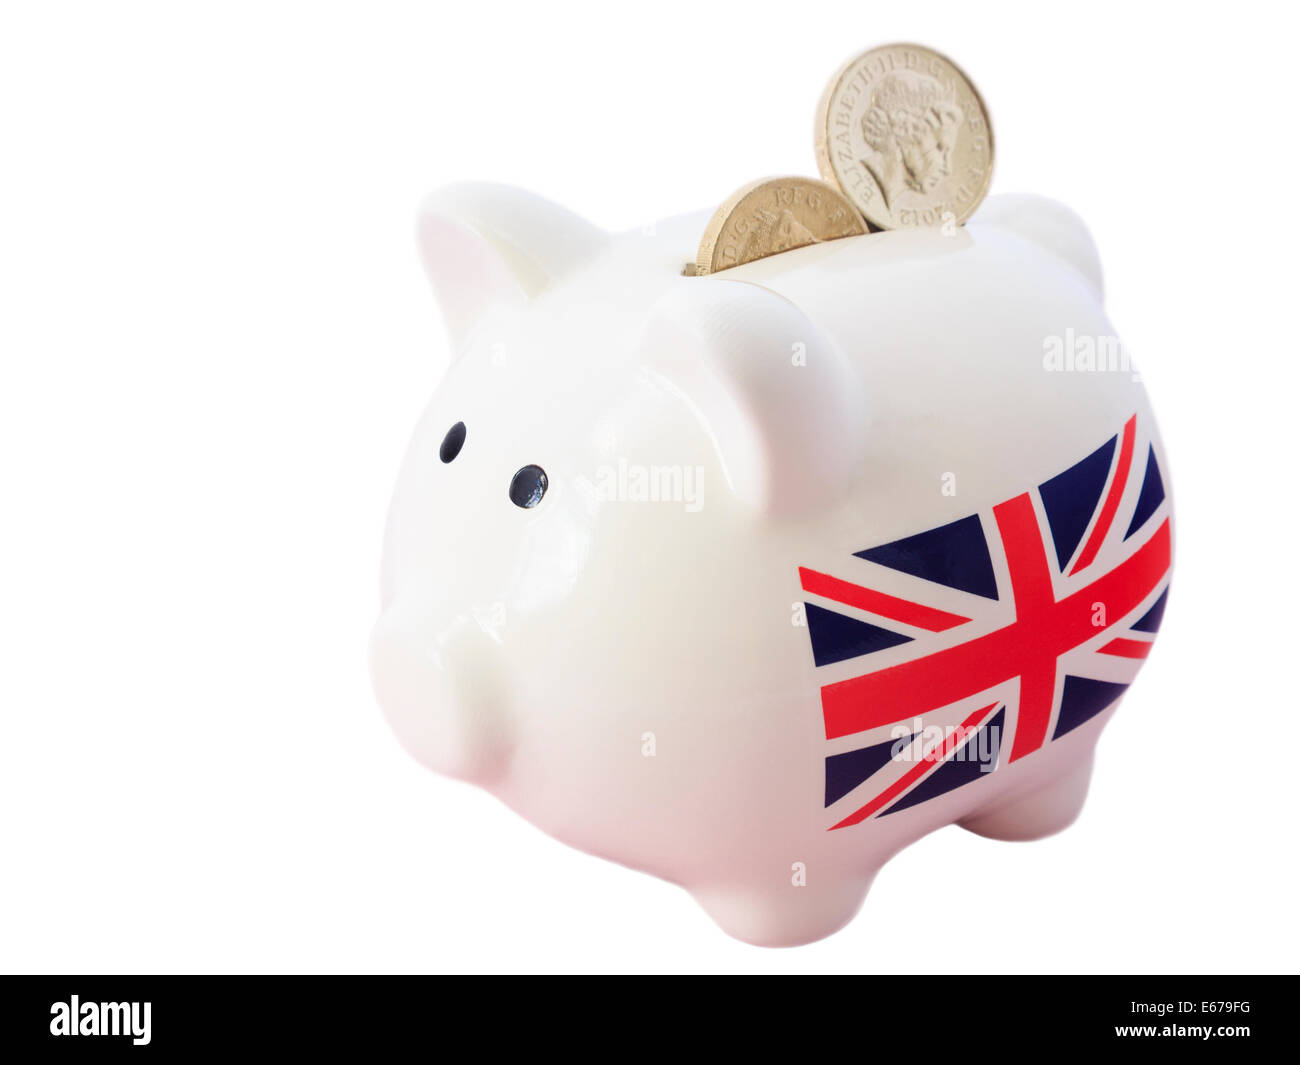 Piggy bank with British Union Jack and sterling pound coins in slot to illustrate saving money financial growth - Stock Image